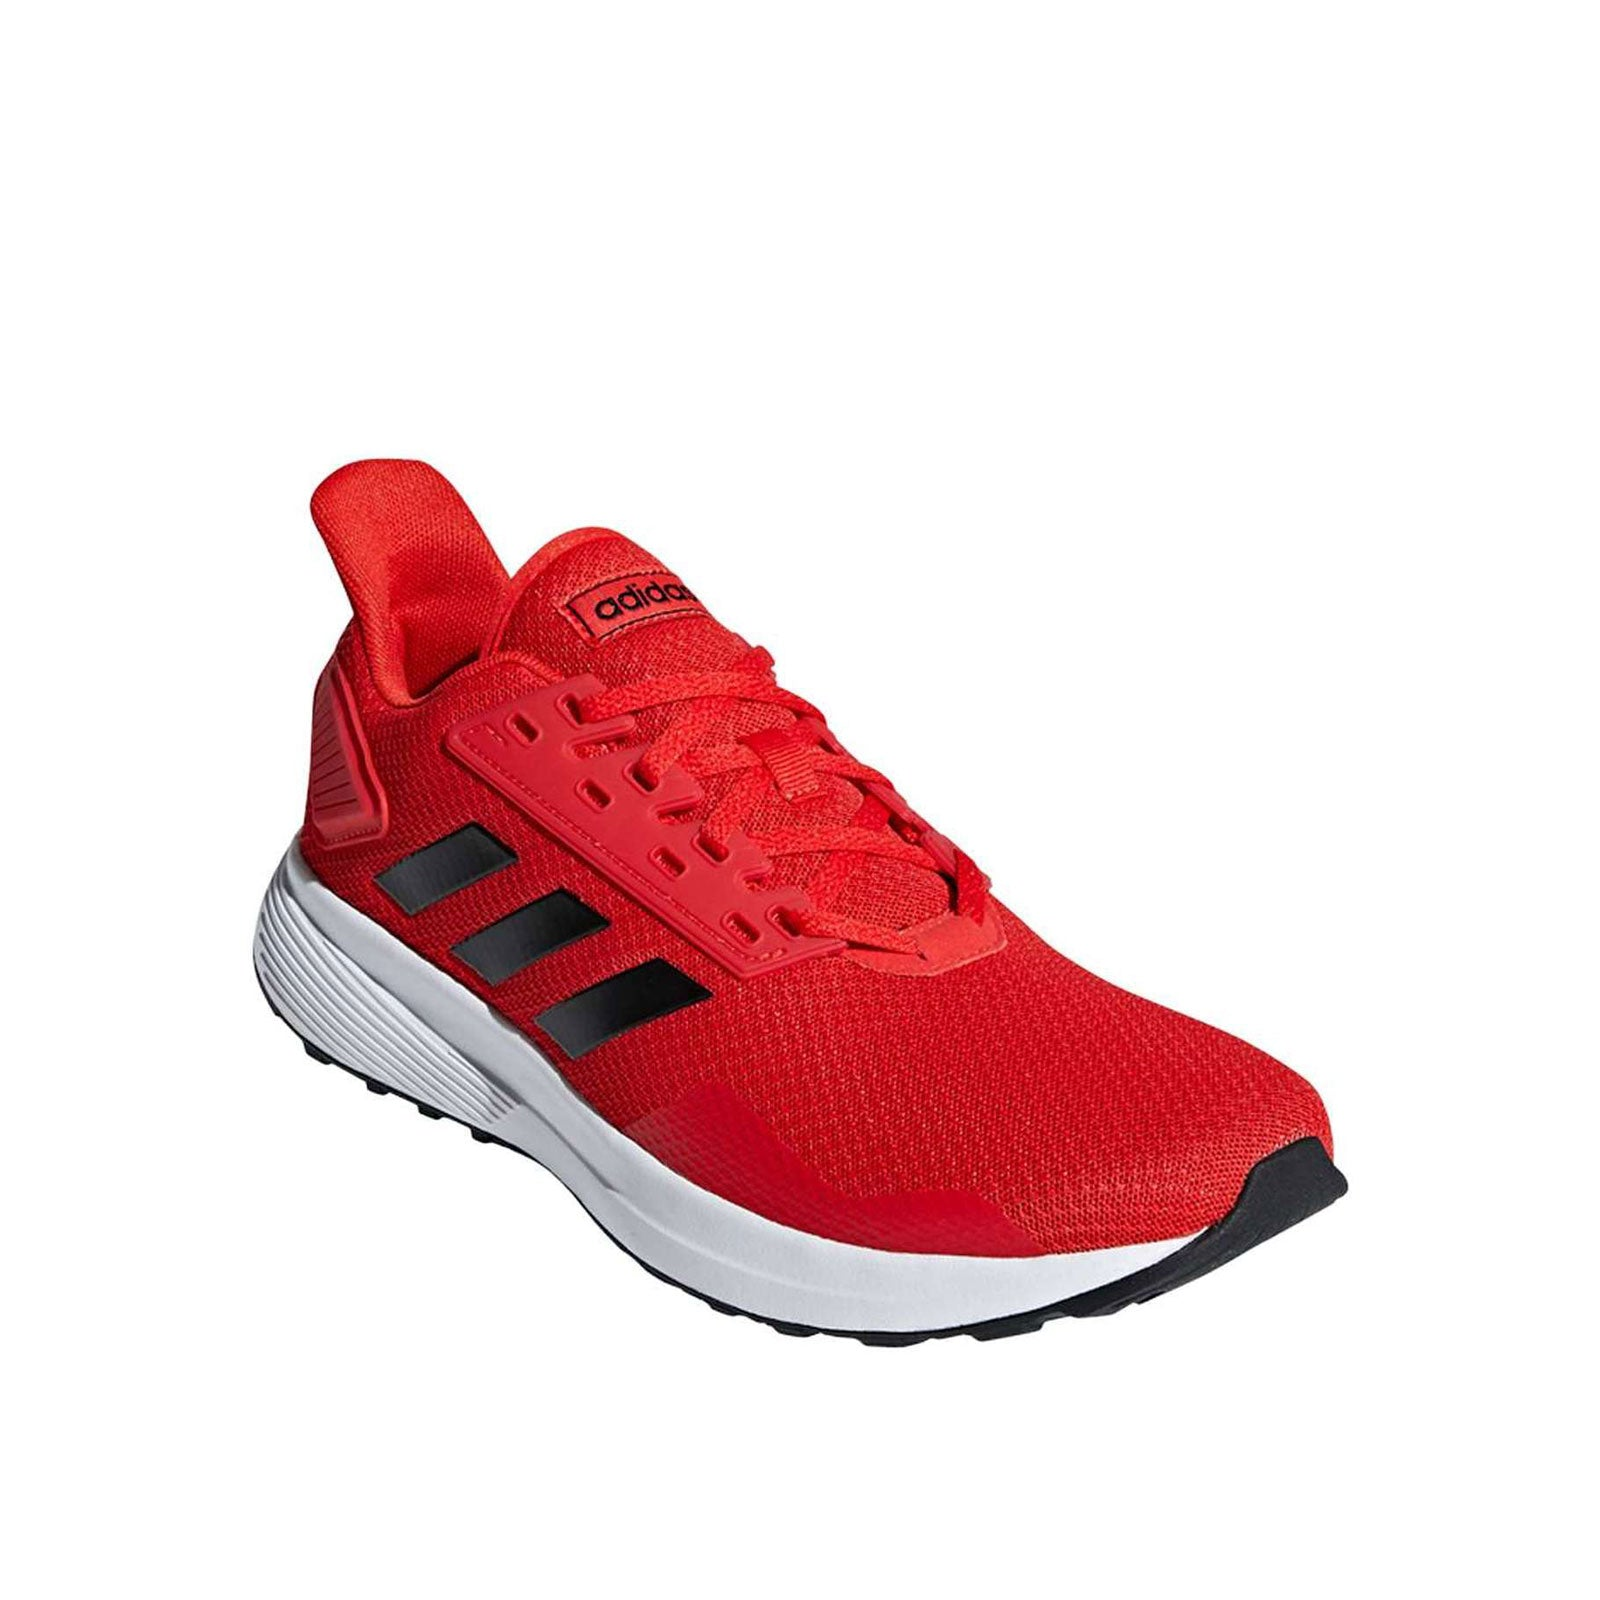 Adidas Duramo 9-Active Red/Black/White